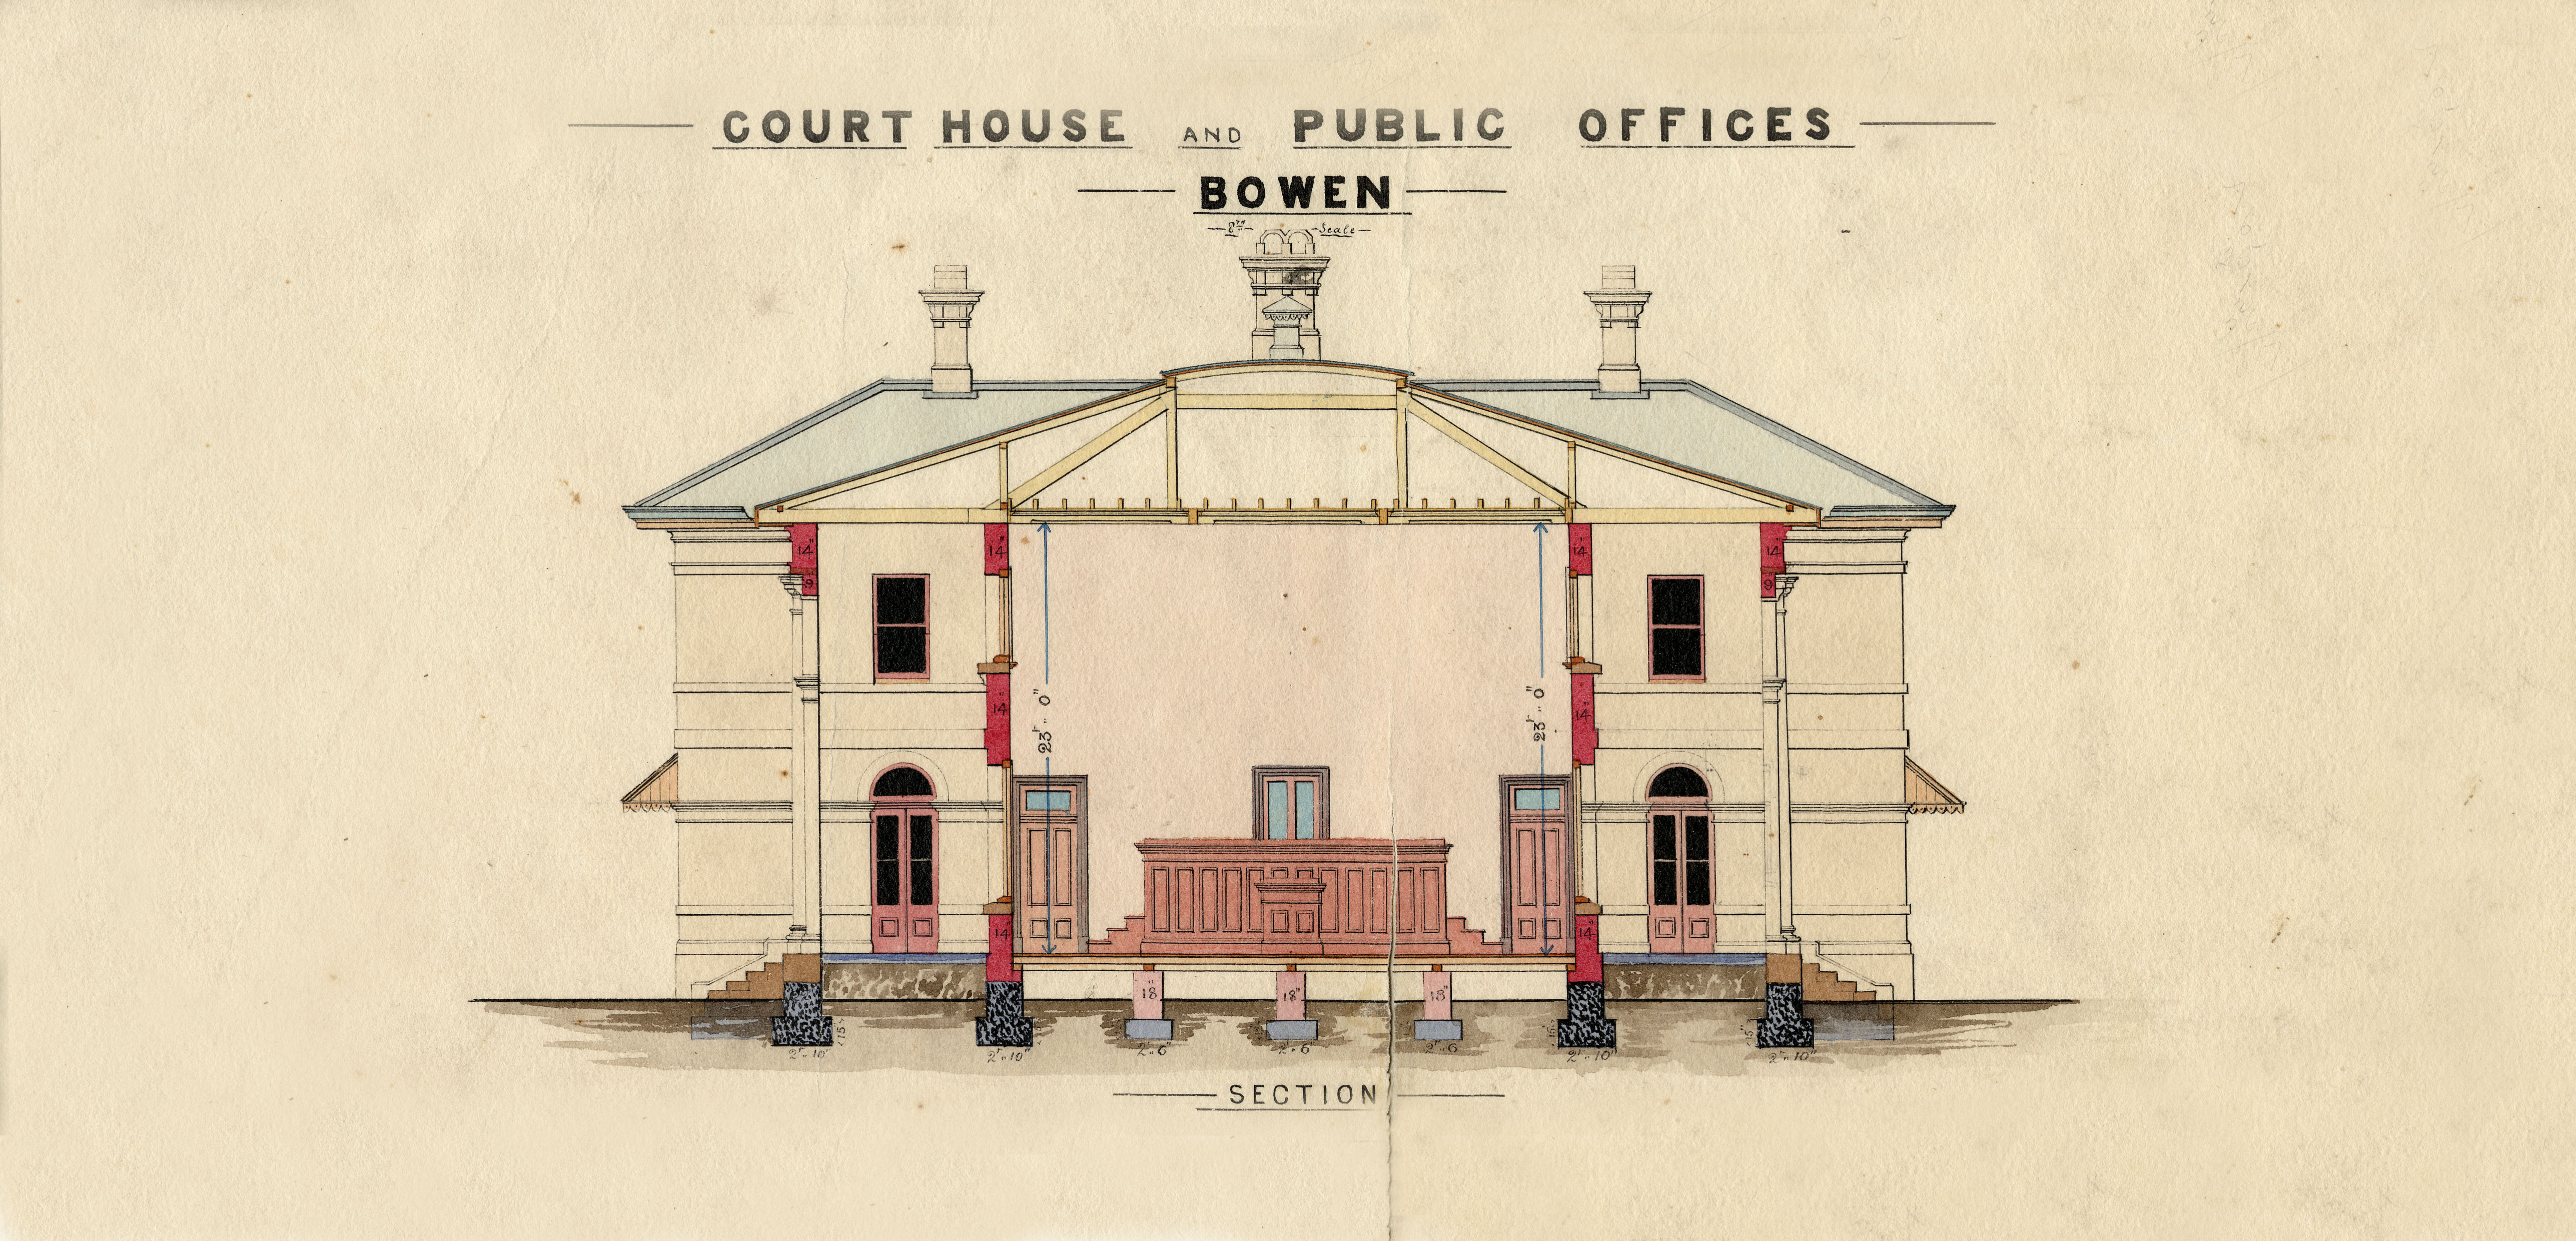 BOWEN. Court House and Public Offices. Sections and Court elevation.